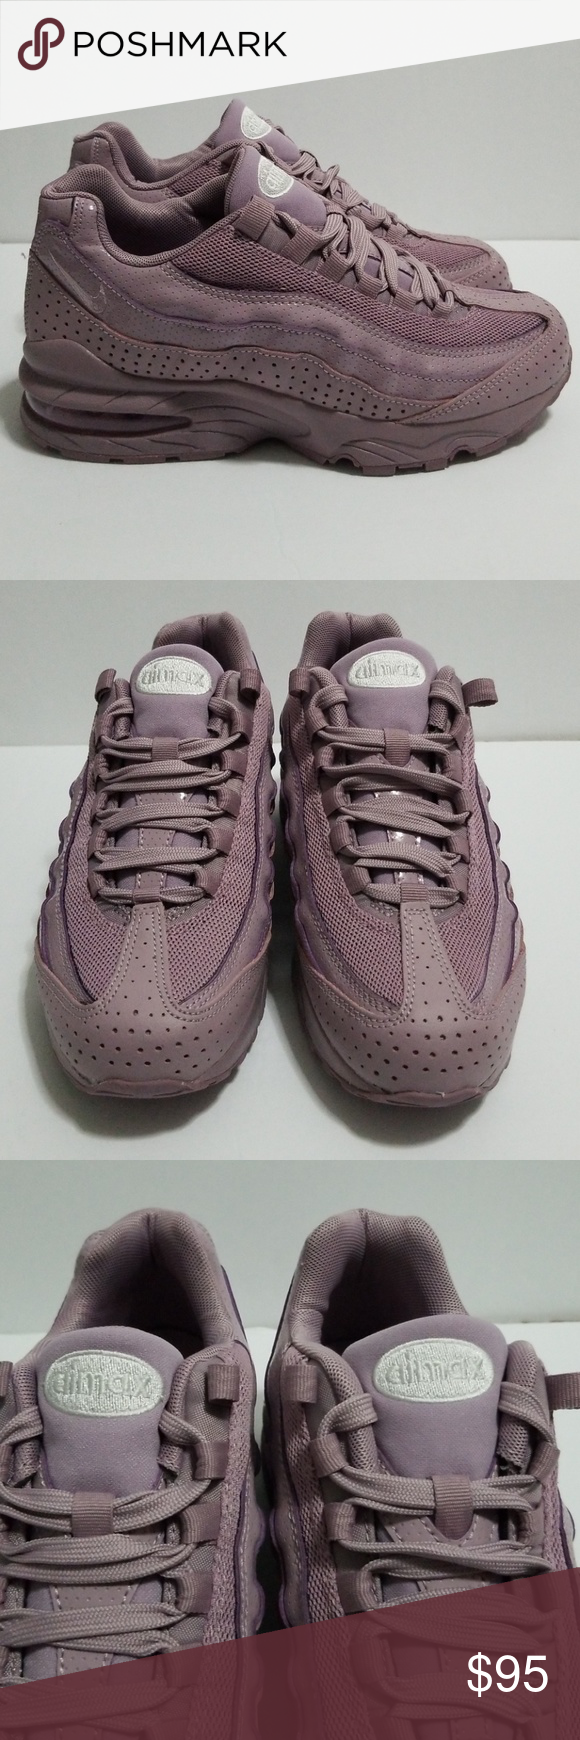 479a555d15 Nike Air Max 95 SE Size 5Y (GS) New AJ1899-600 New Without Box Style AJ1899-600  Nike Air Max 95 SE Size 5Y (GS) Womens Size 6.5 Authentic Nike Shoes ...